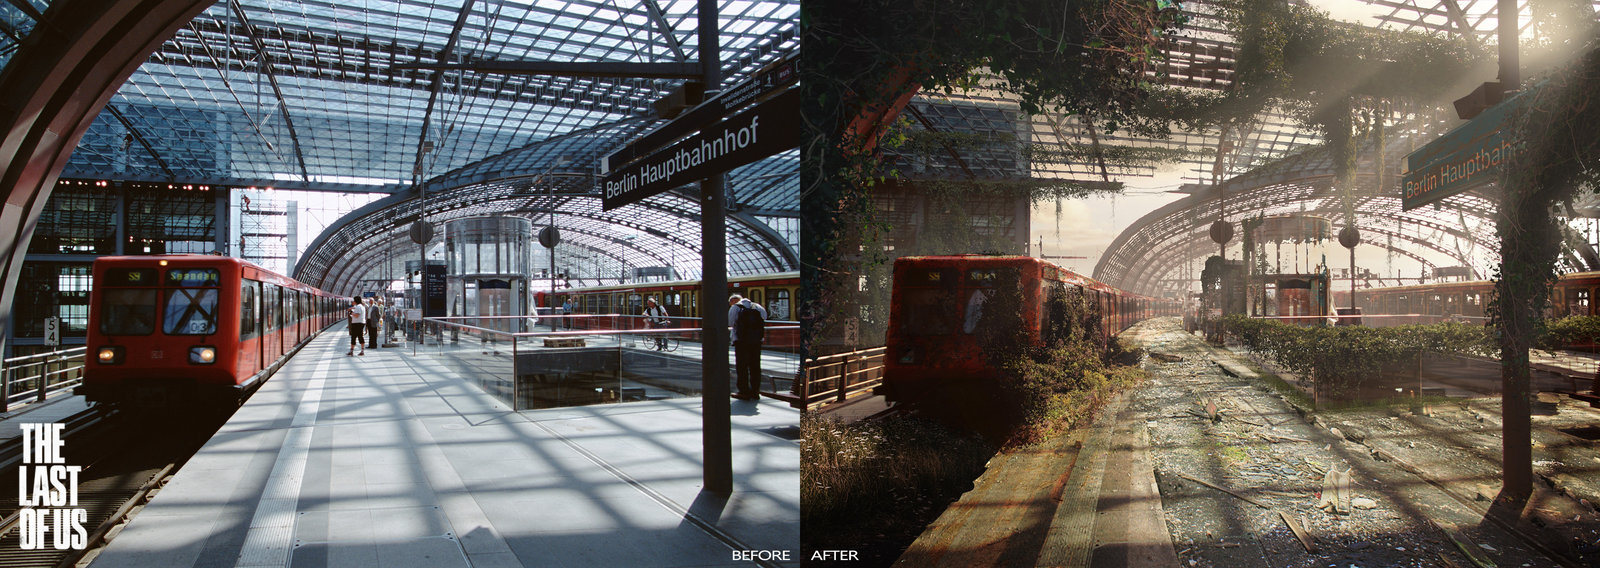 The Last of Us - Berlin Central Station